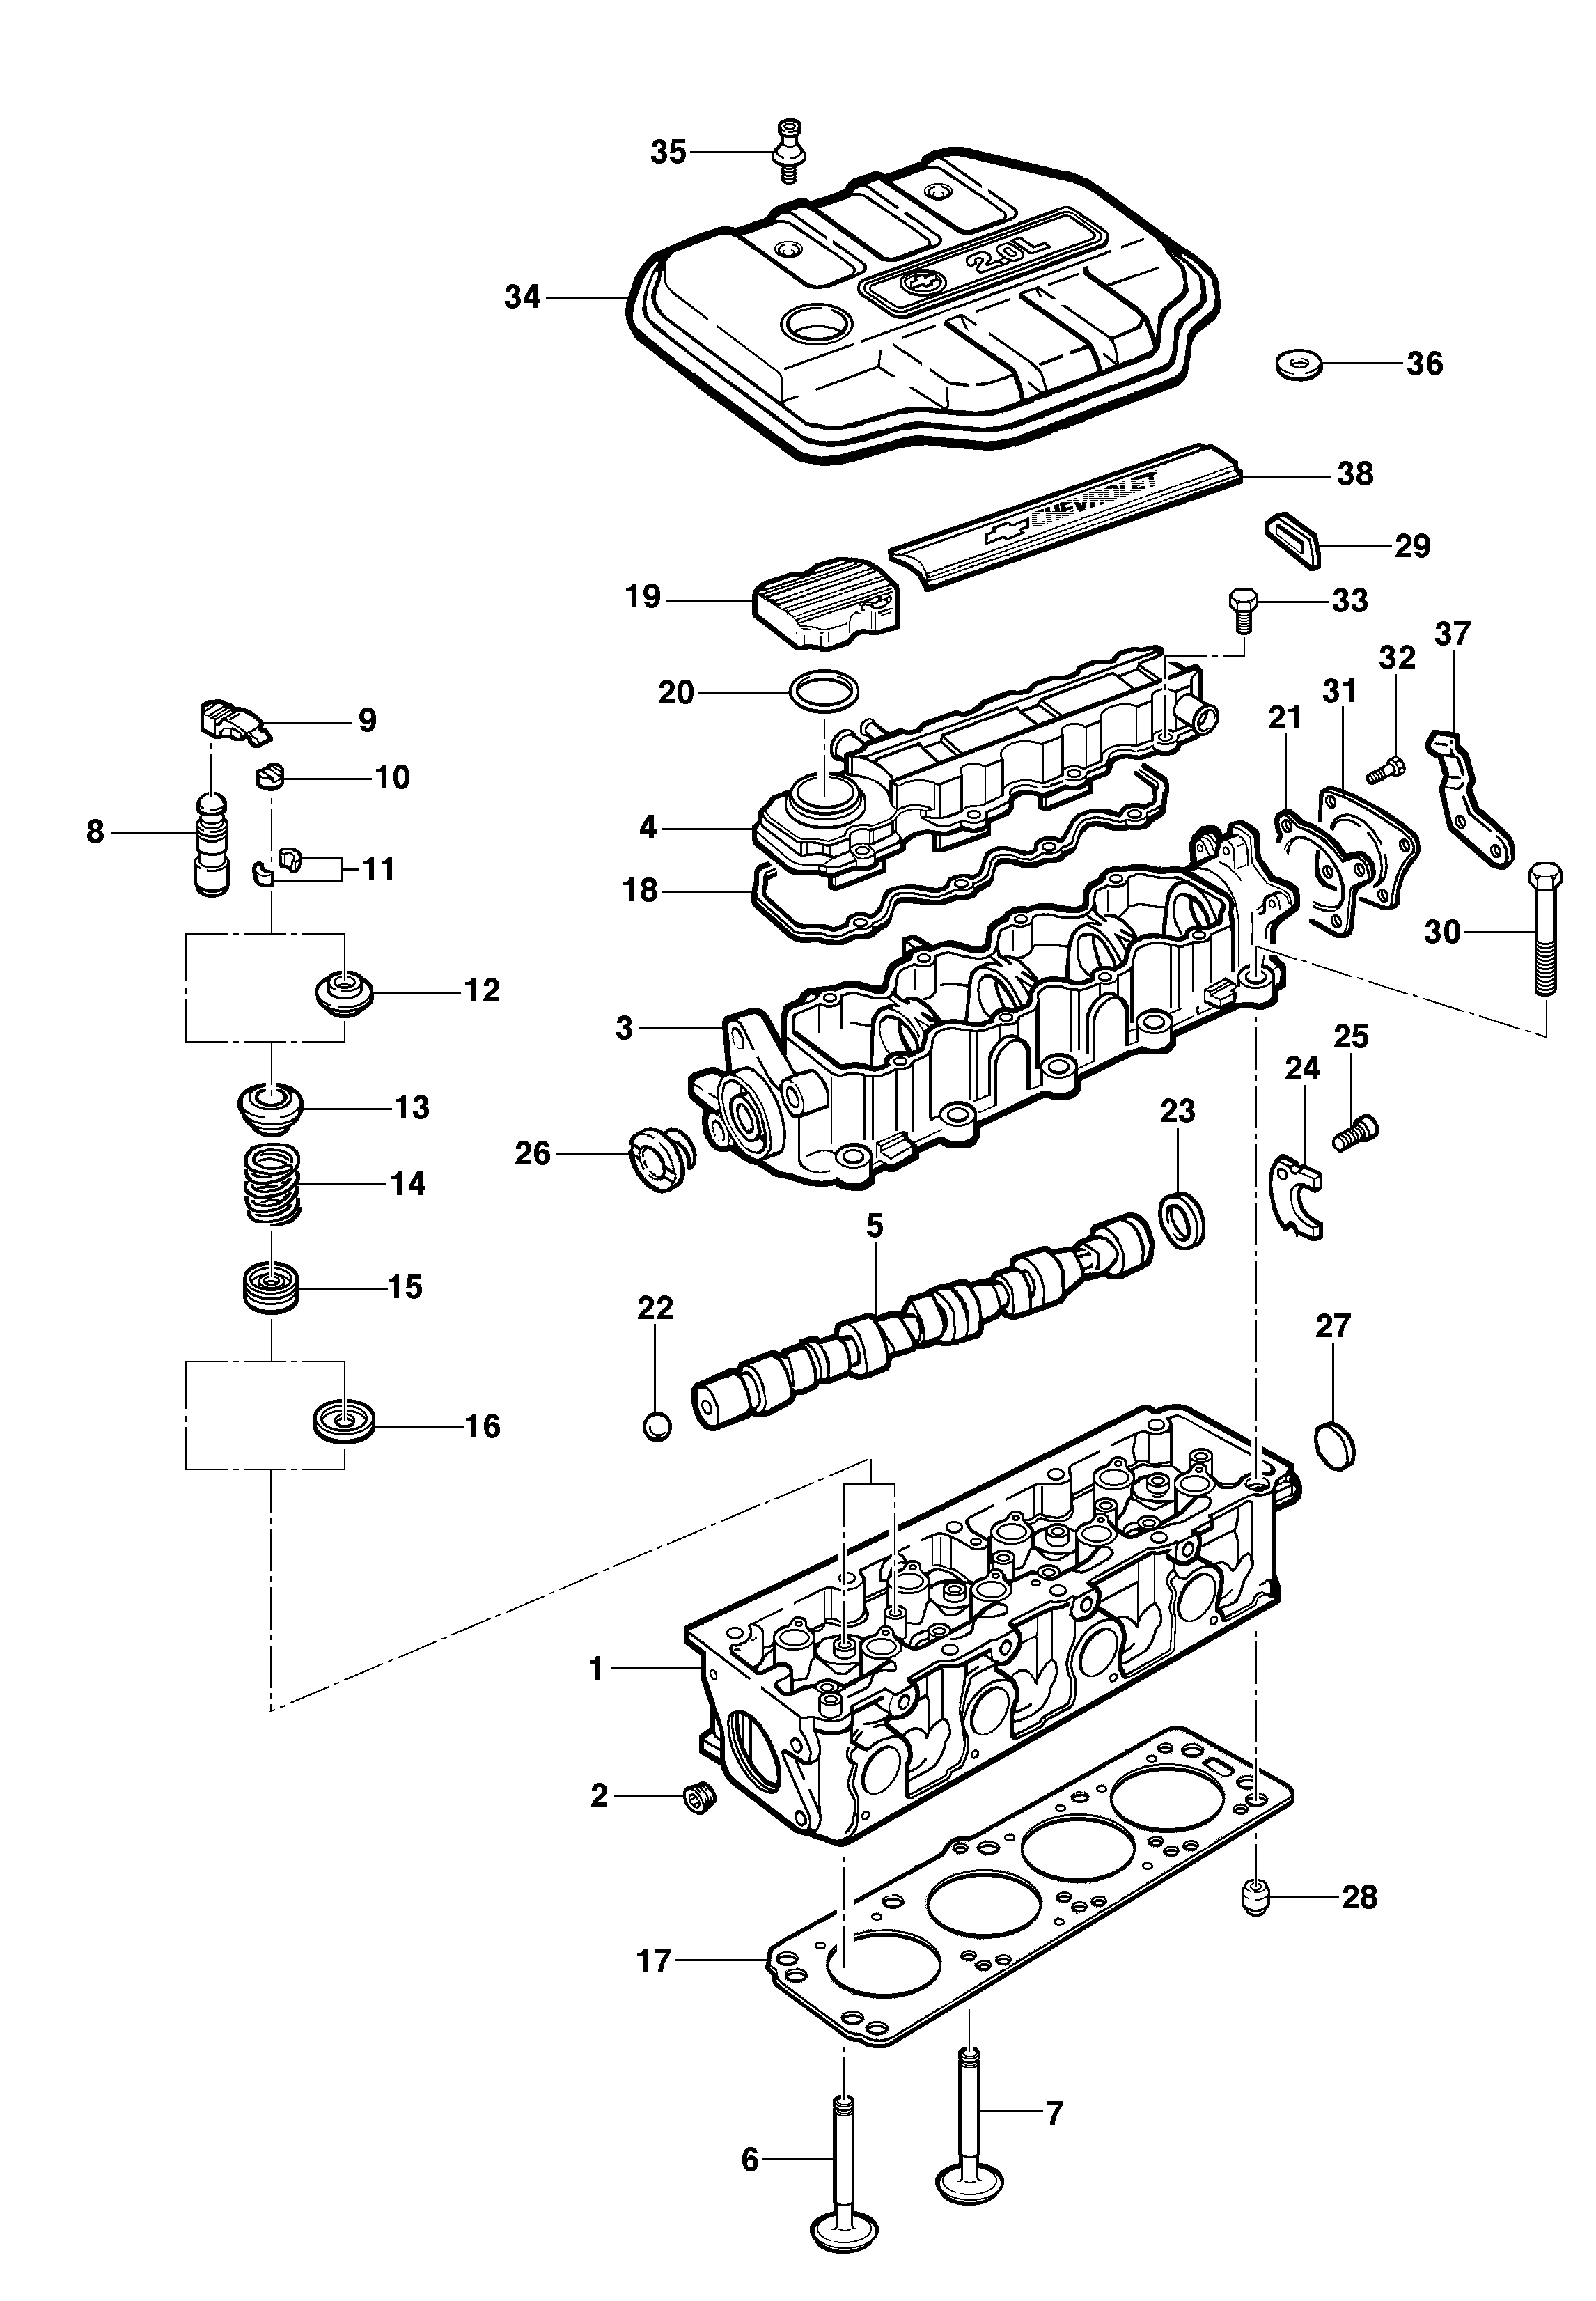 8v Engine Diagram Wiring Library Vw Mk2 Cylinder Head